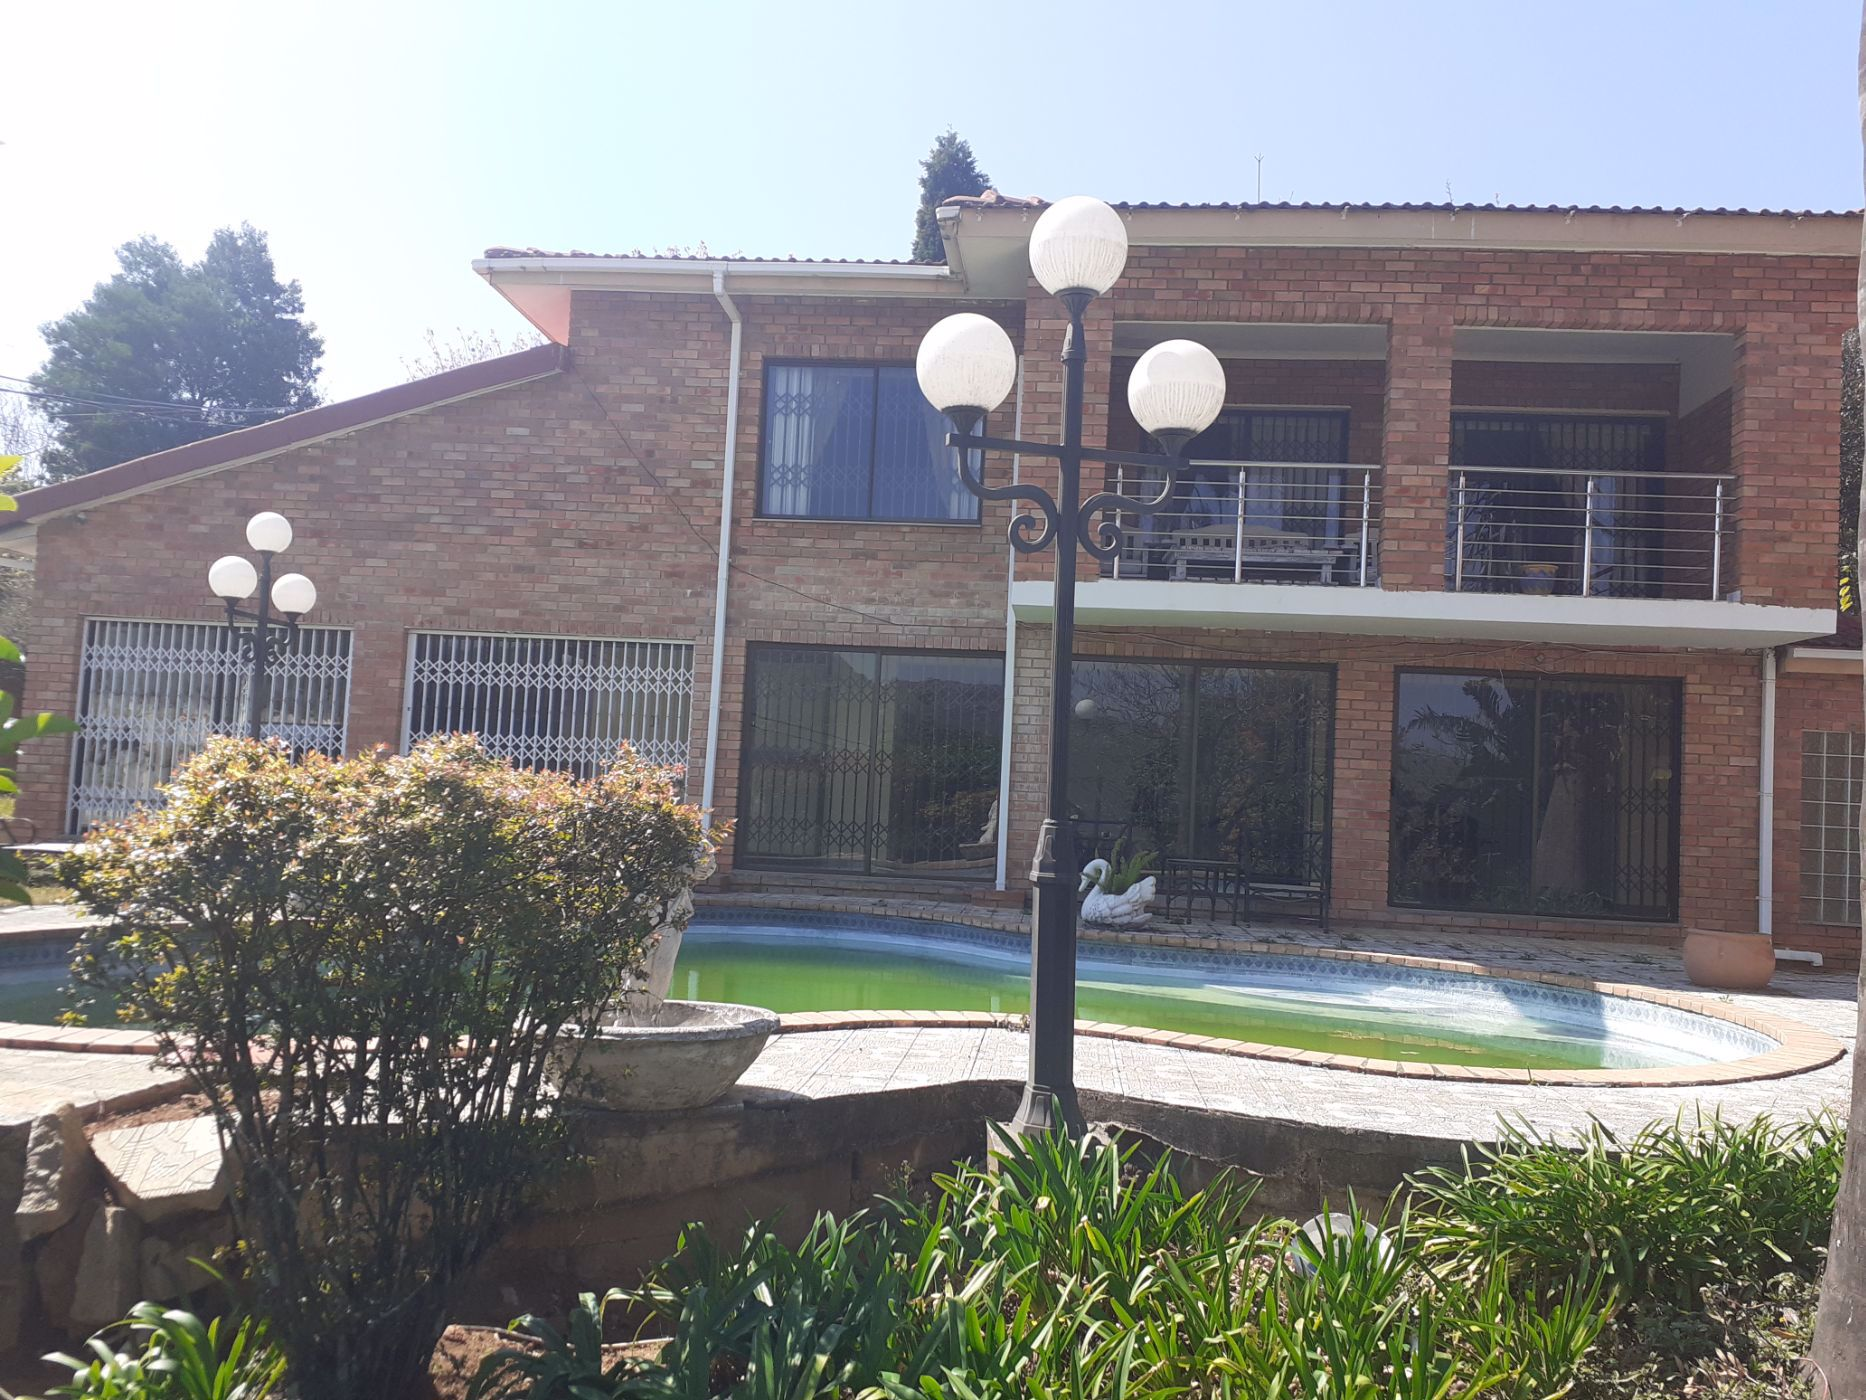 6 bedroom house for sale in Mbabane (Swaziland)